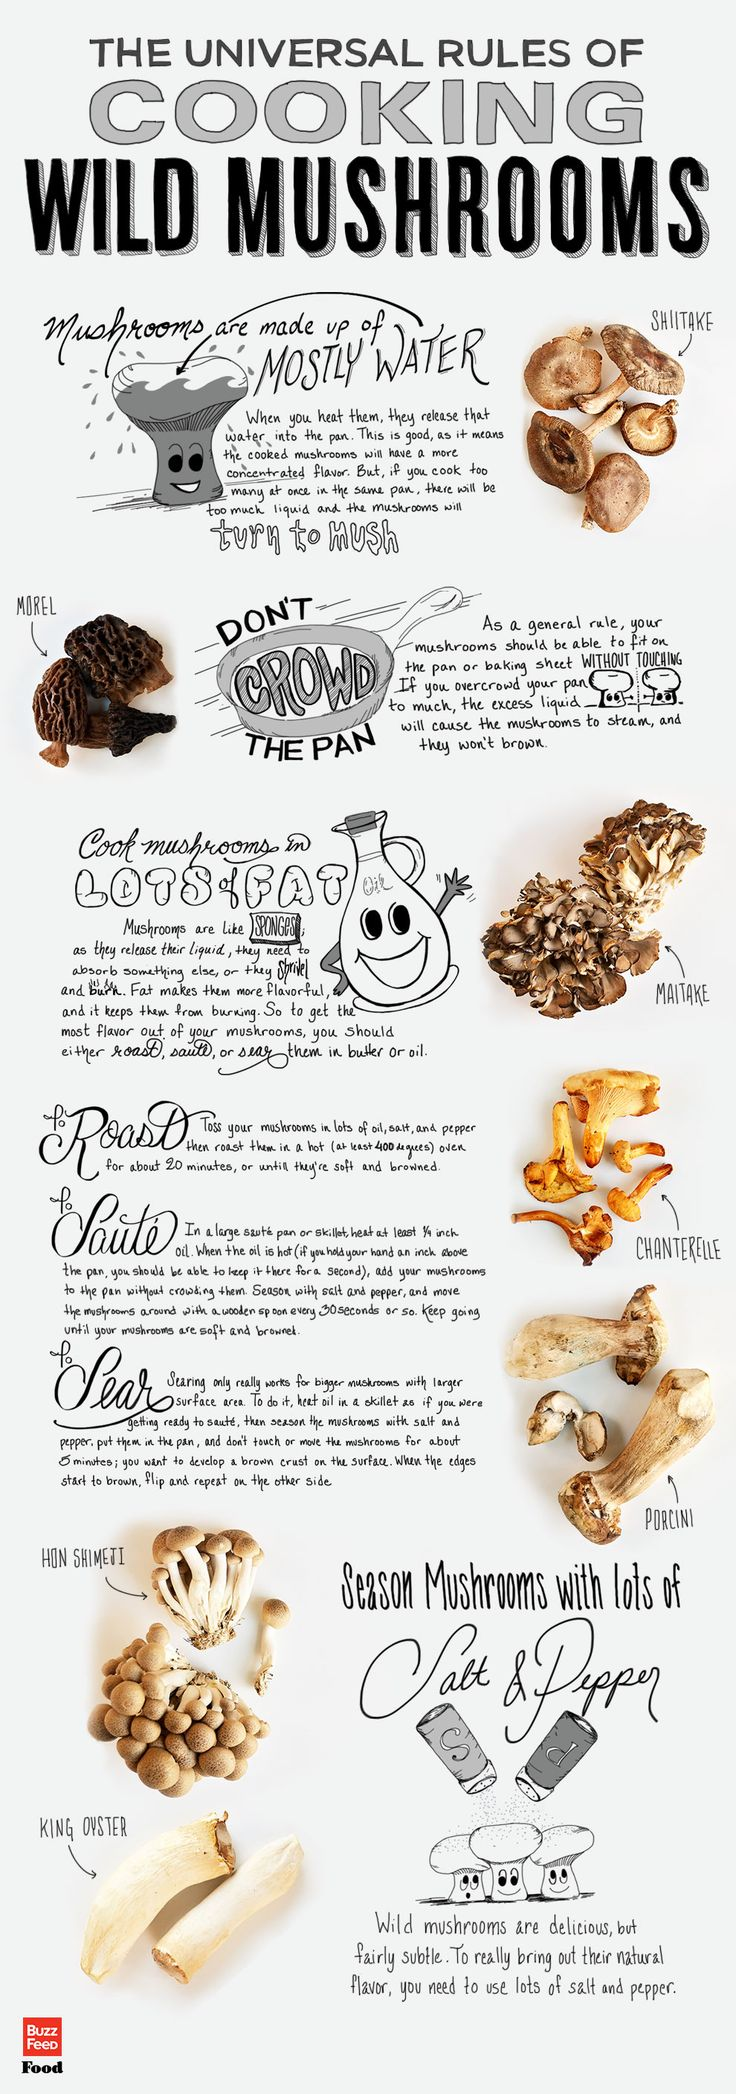 Best 25 pictures of fungi ideas on pinterest fungi pictures fungi and mushroom fungi - Wild mushrooms business ideas ...